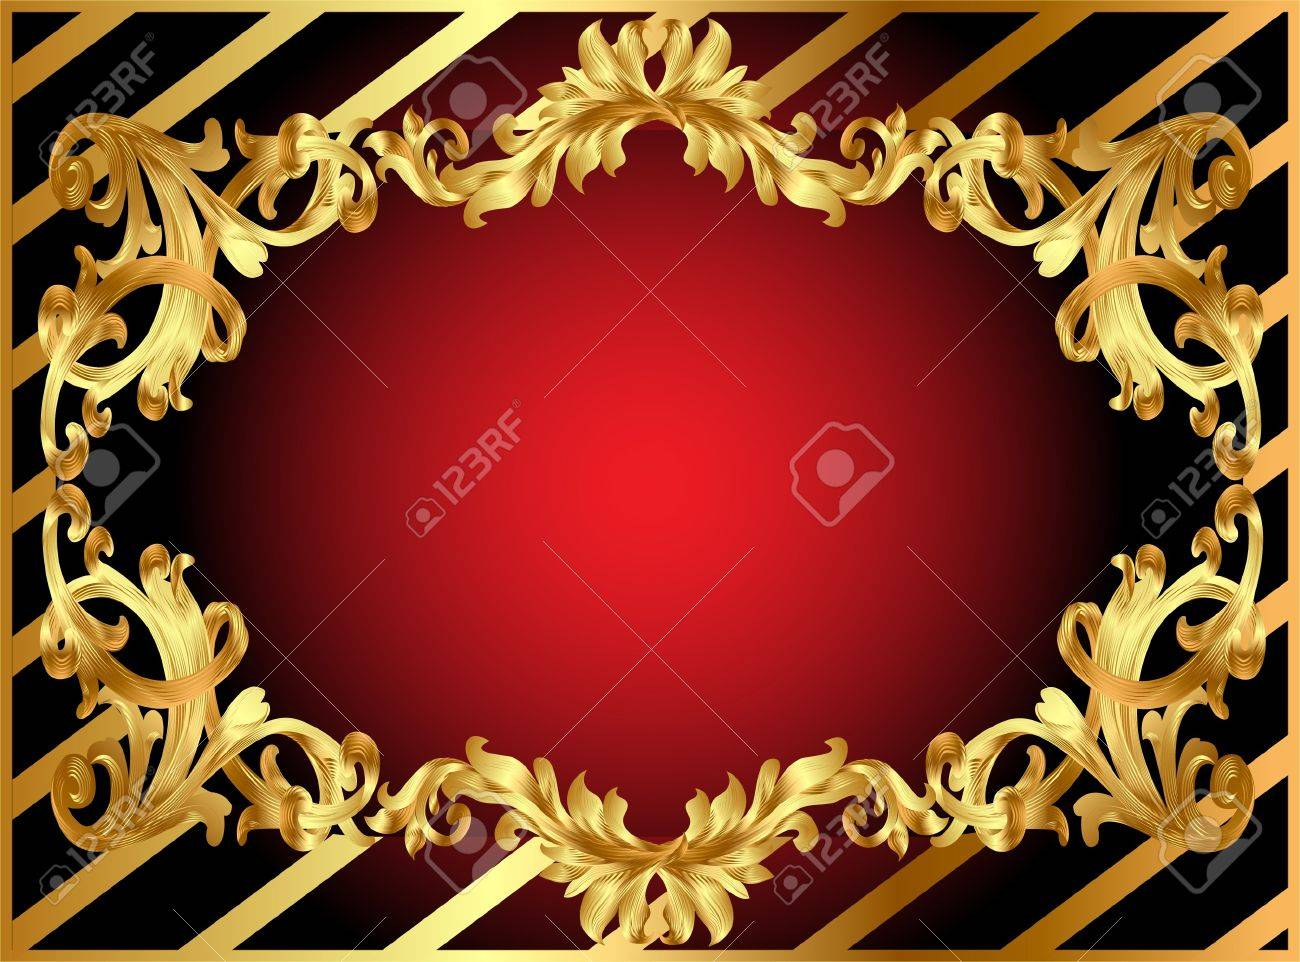 illustration gold frame with pattern and band Stock Vector - 10089117